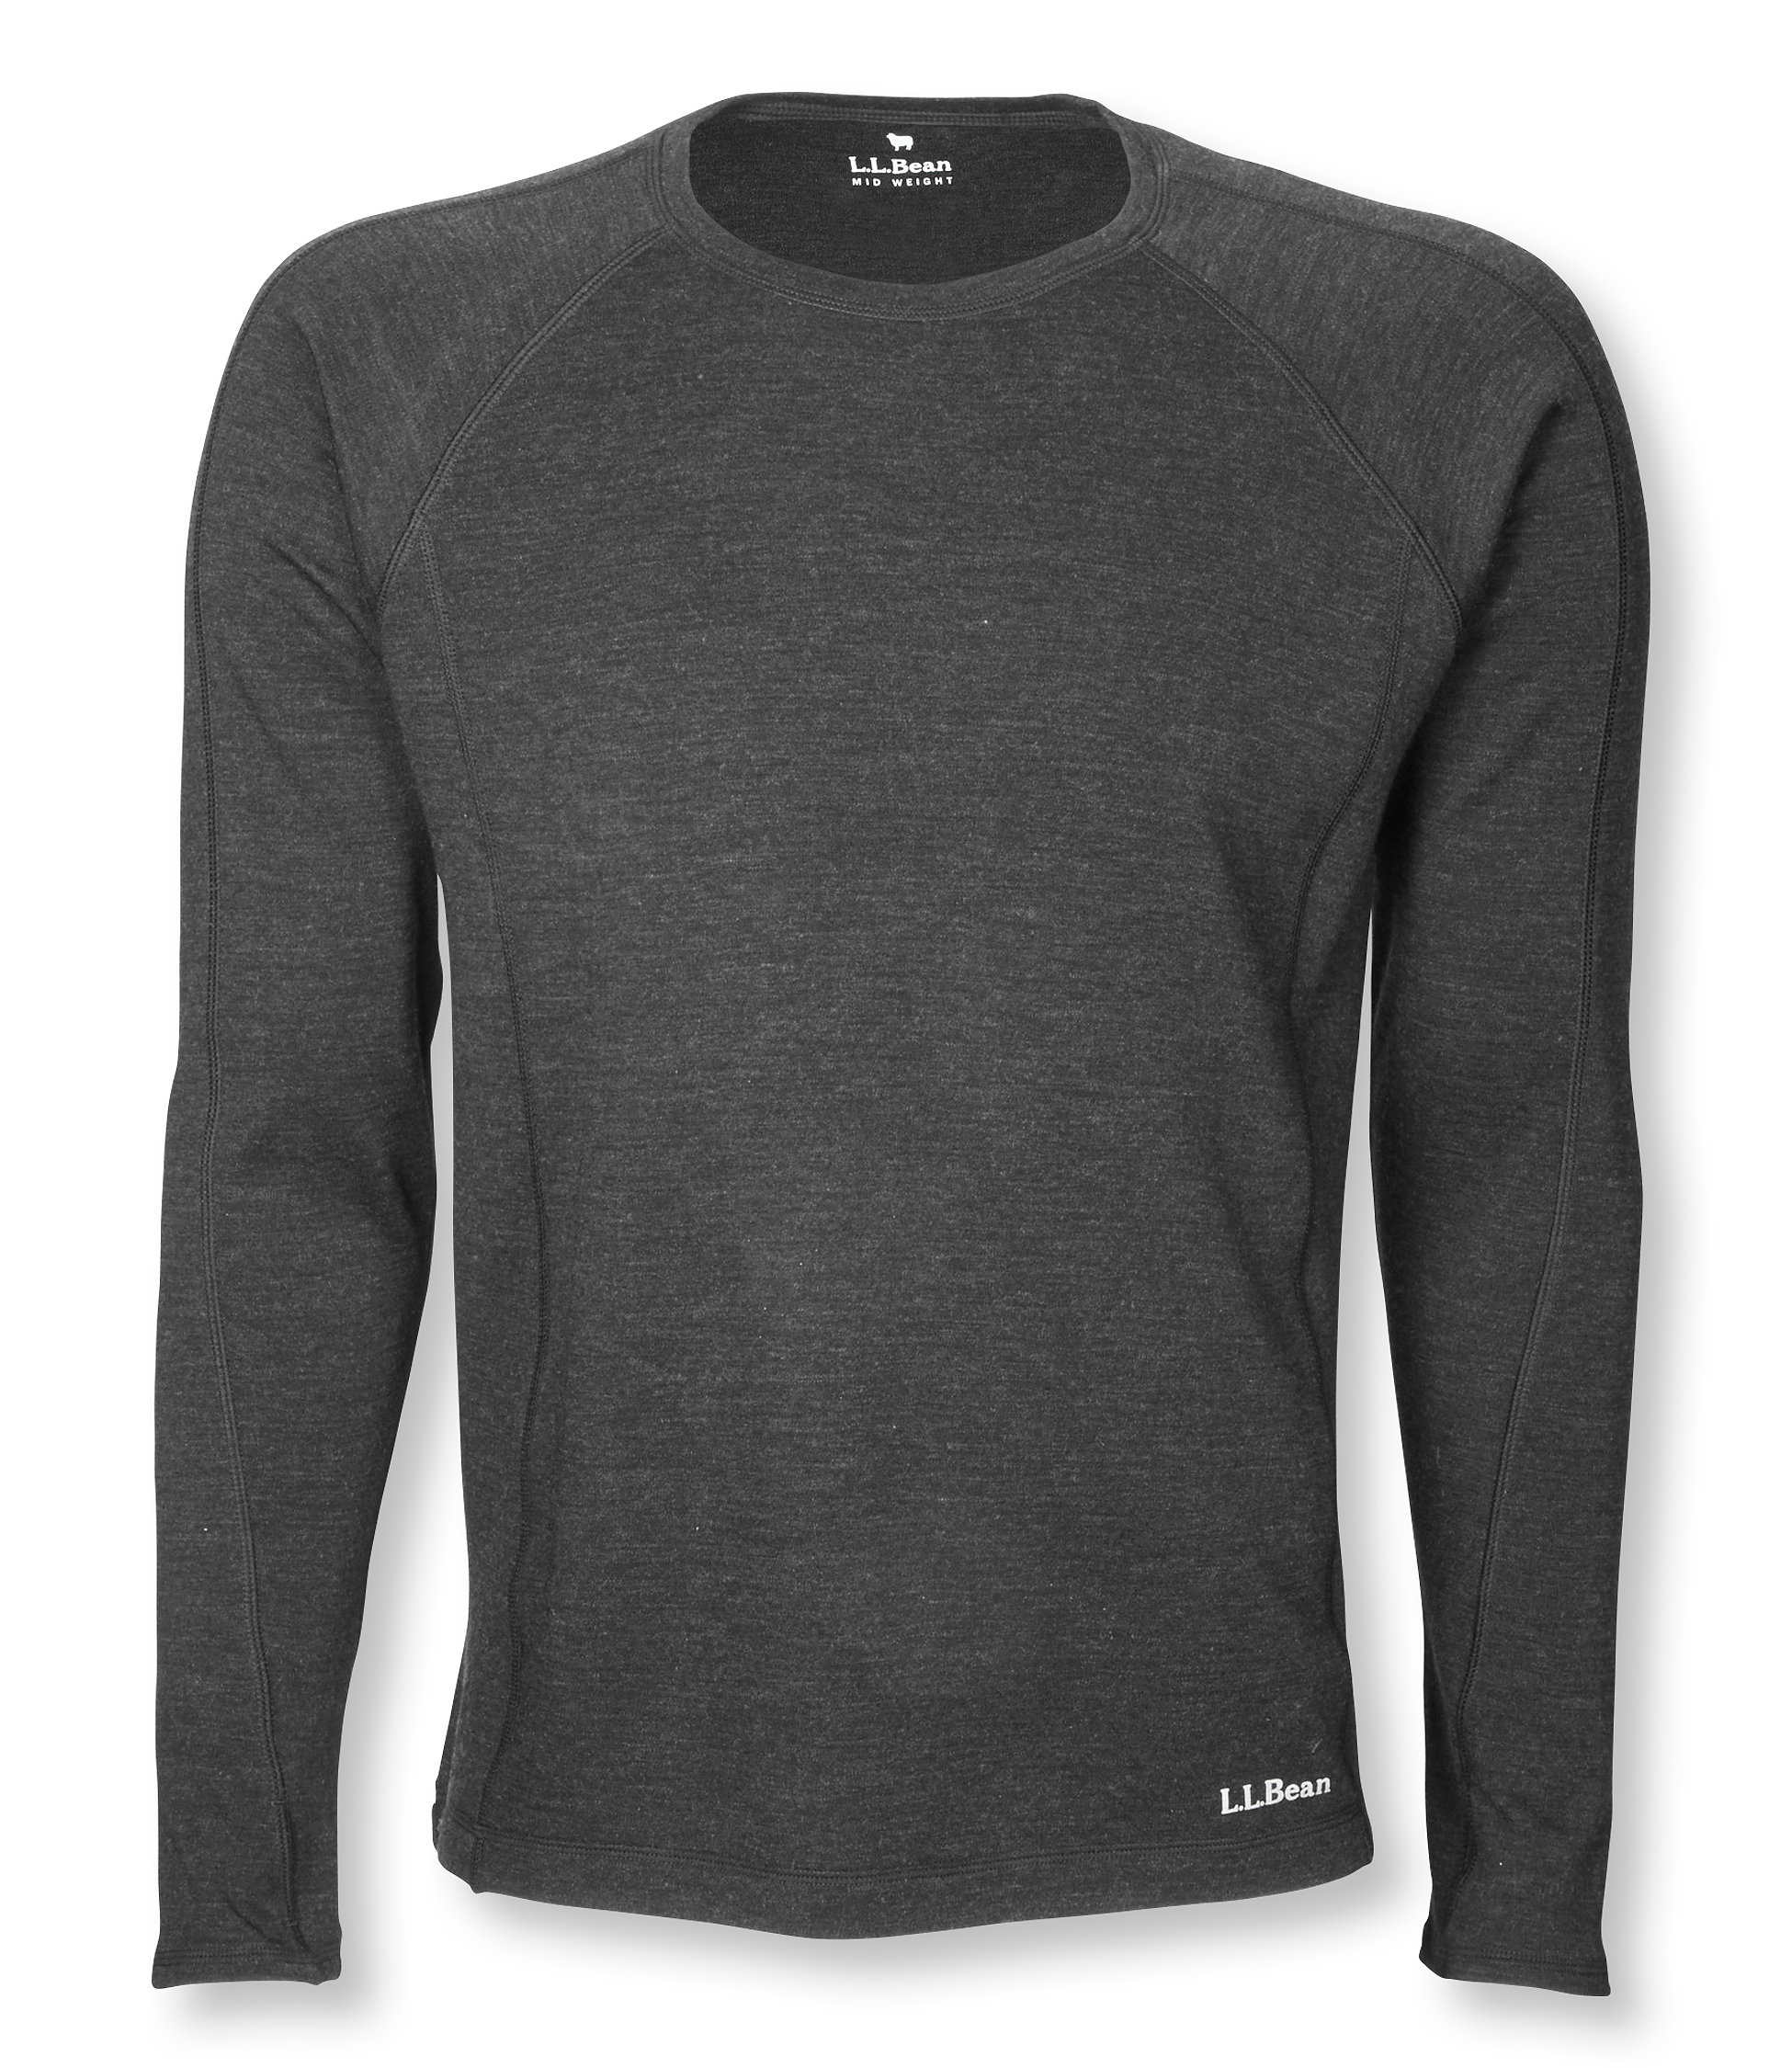 photo: L.L.Bean Cresta Wool Midweight Base Layer, Crew base layer top